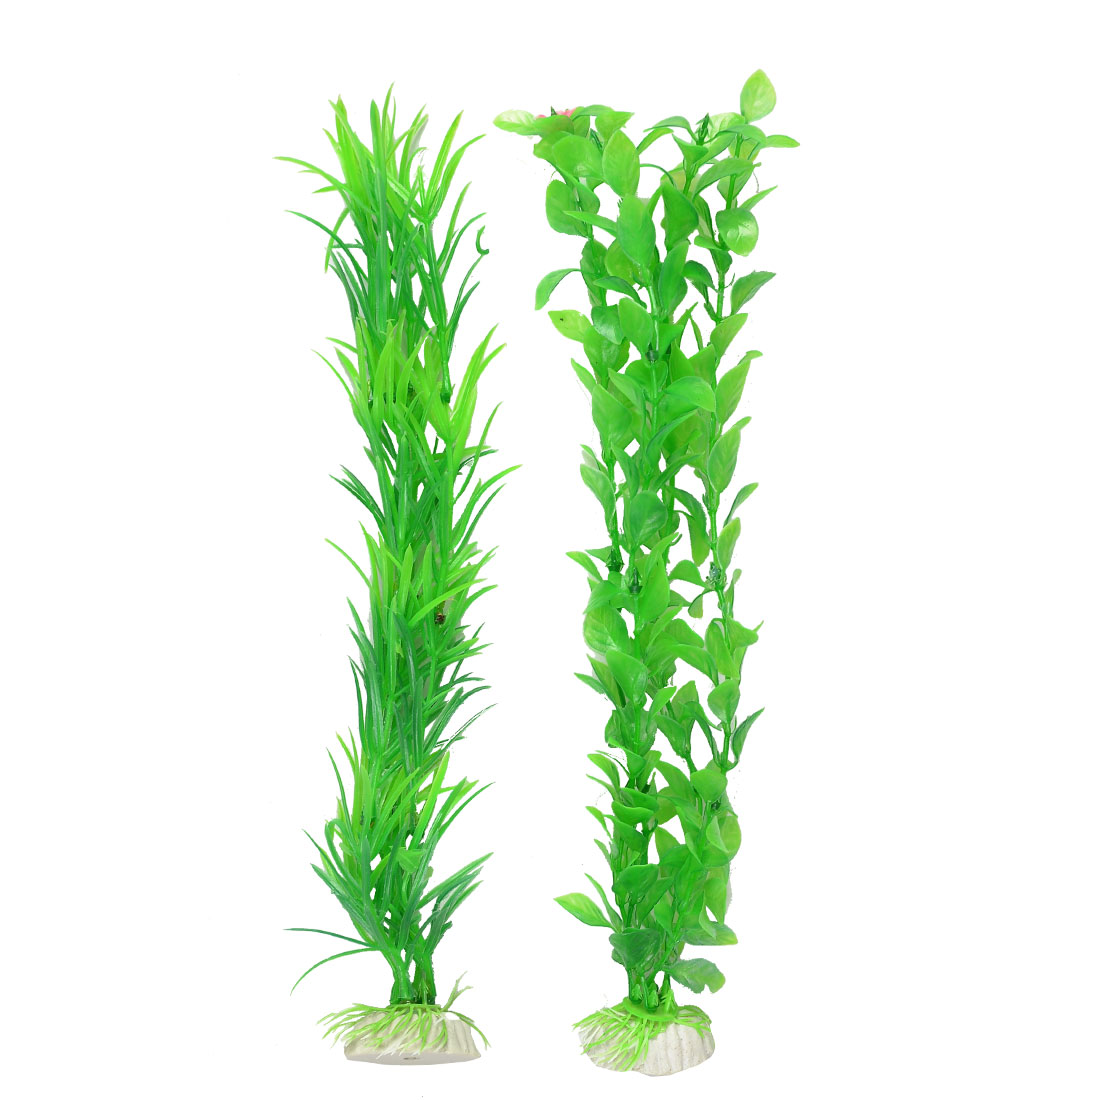 2 Pcs Green Ovate Leaf Flower Decorated Aquascape Simulation Plant Decor